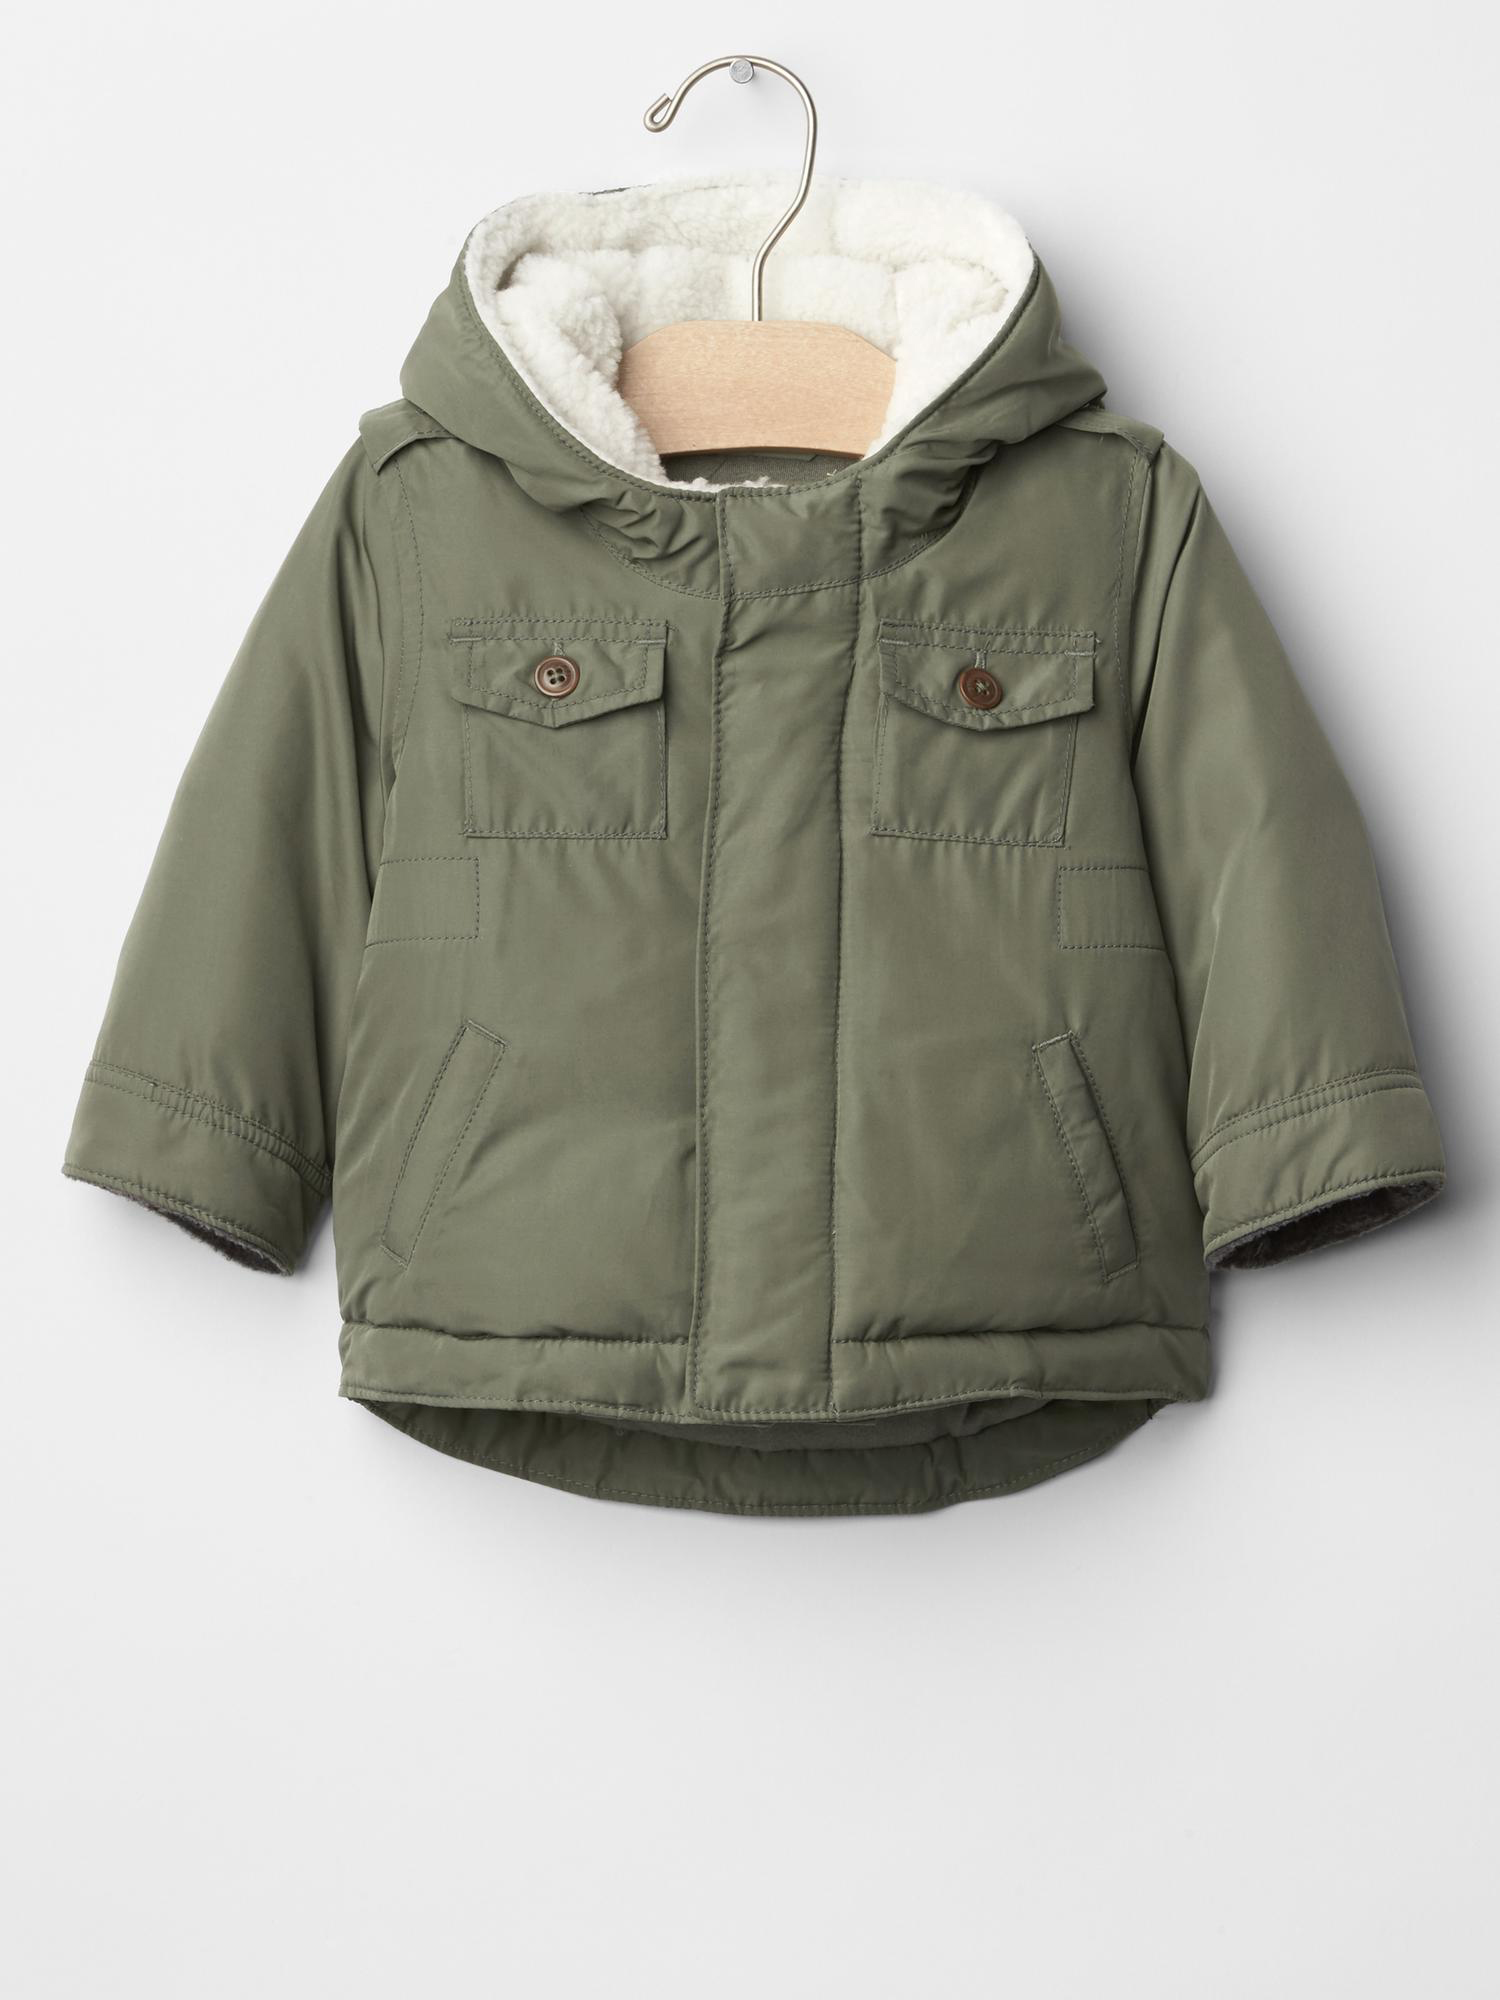 Sherpa Puffer Parka from Baby Gap